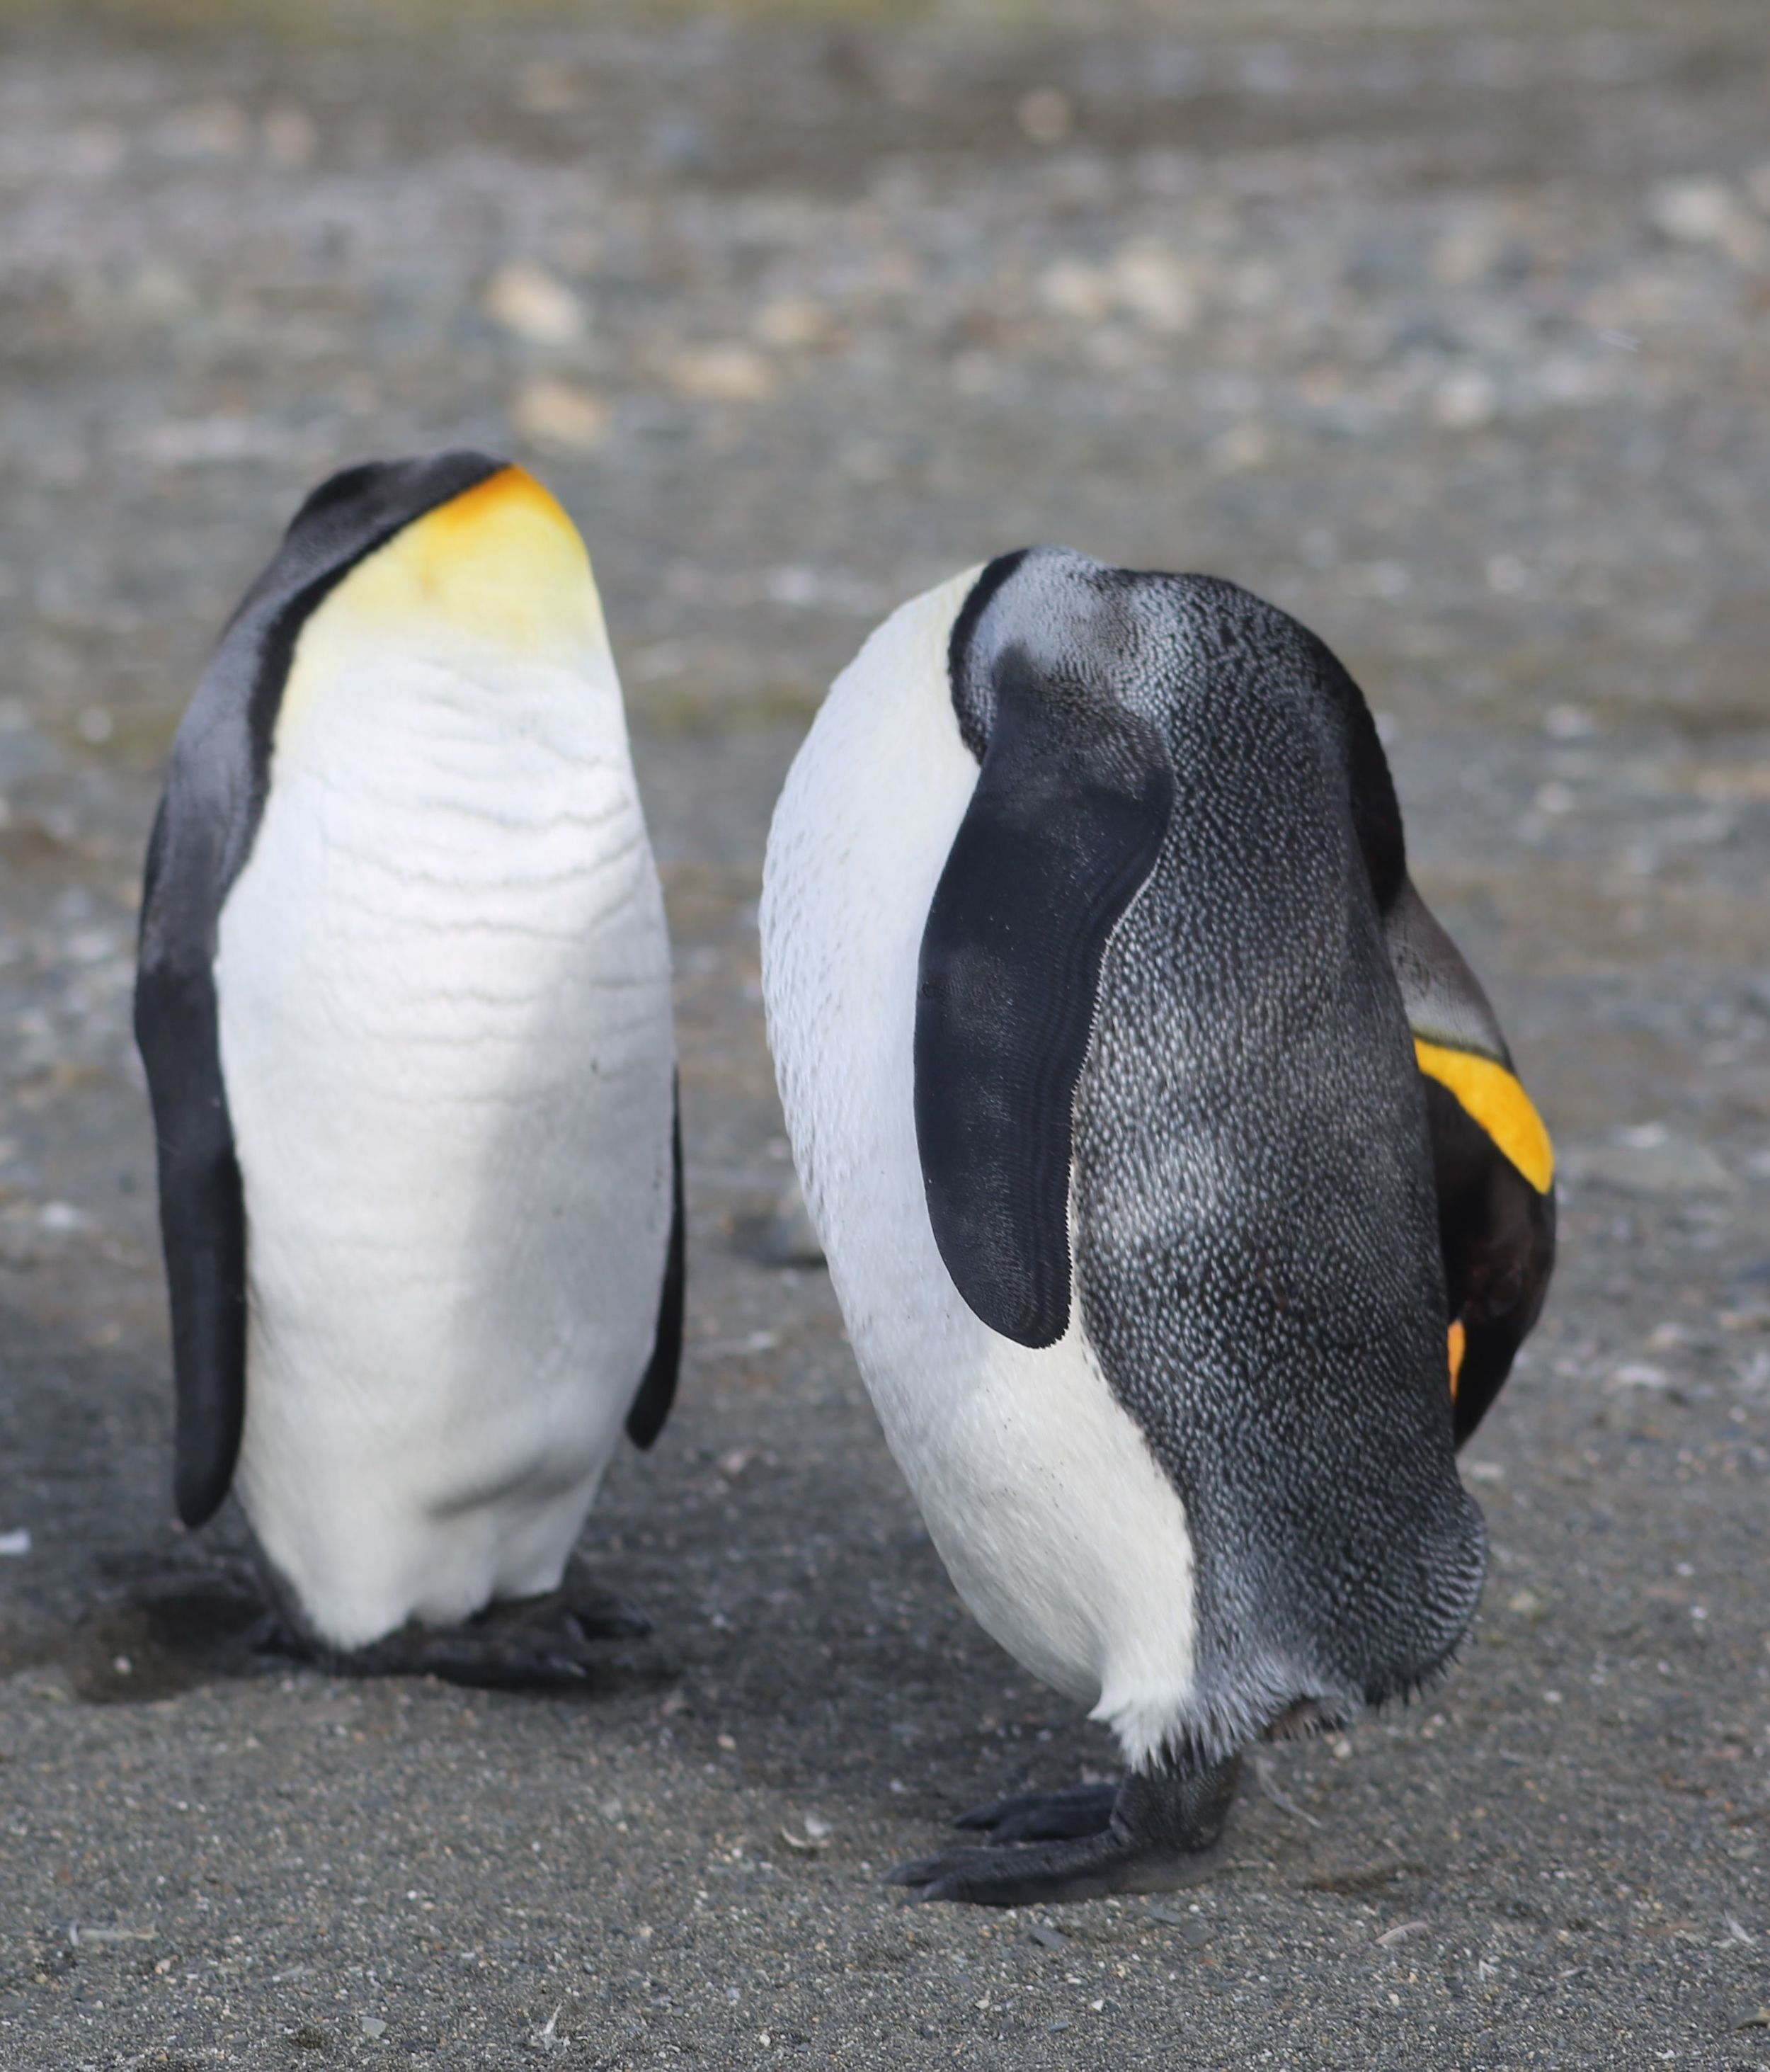 No, these seemingly headless king penguins aren't the two of US, but they're among the many unforgettable sights that we would see in our voyage to the deep, deep, deep South.  (Feel free to invent a funny caption.)